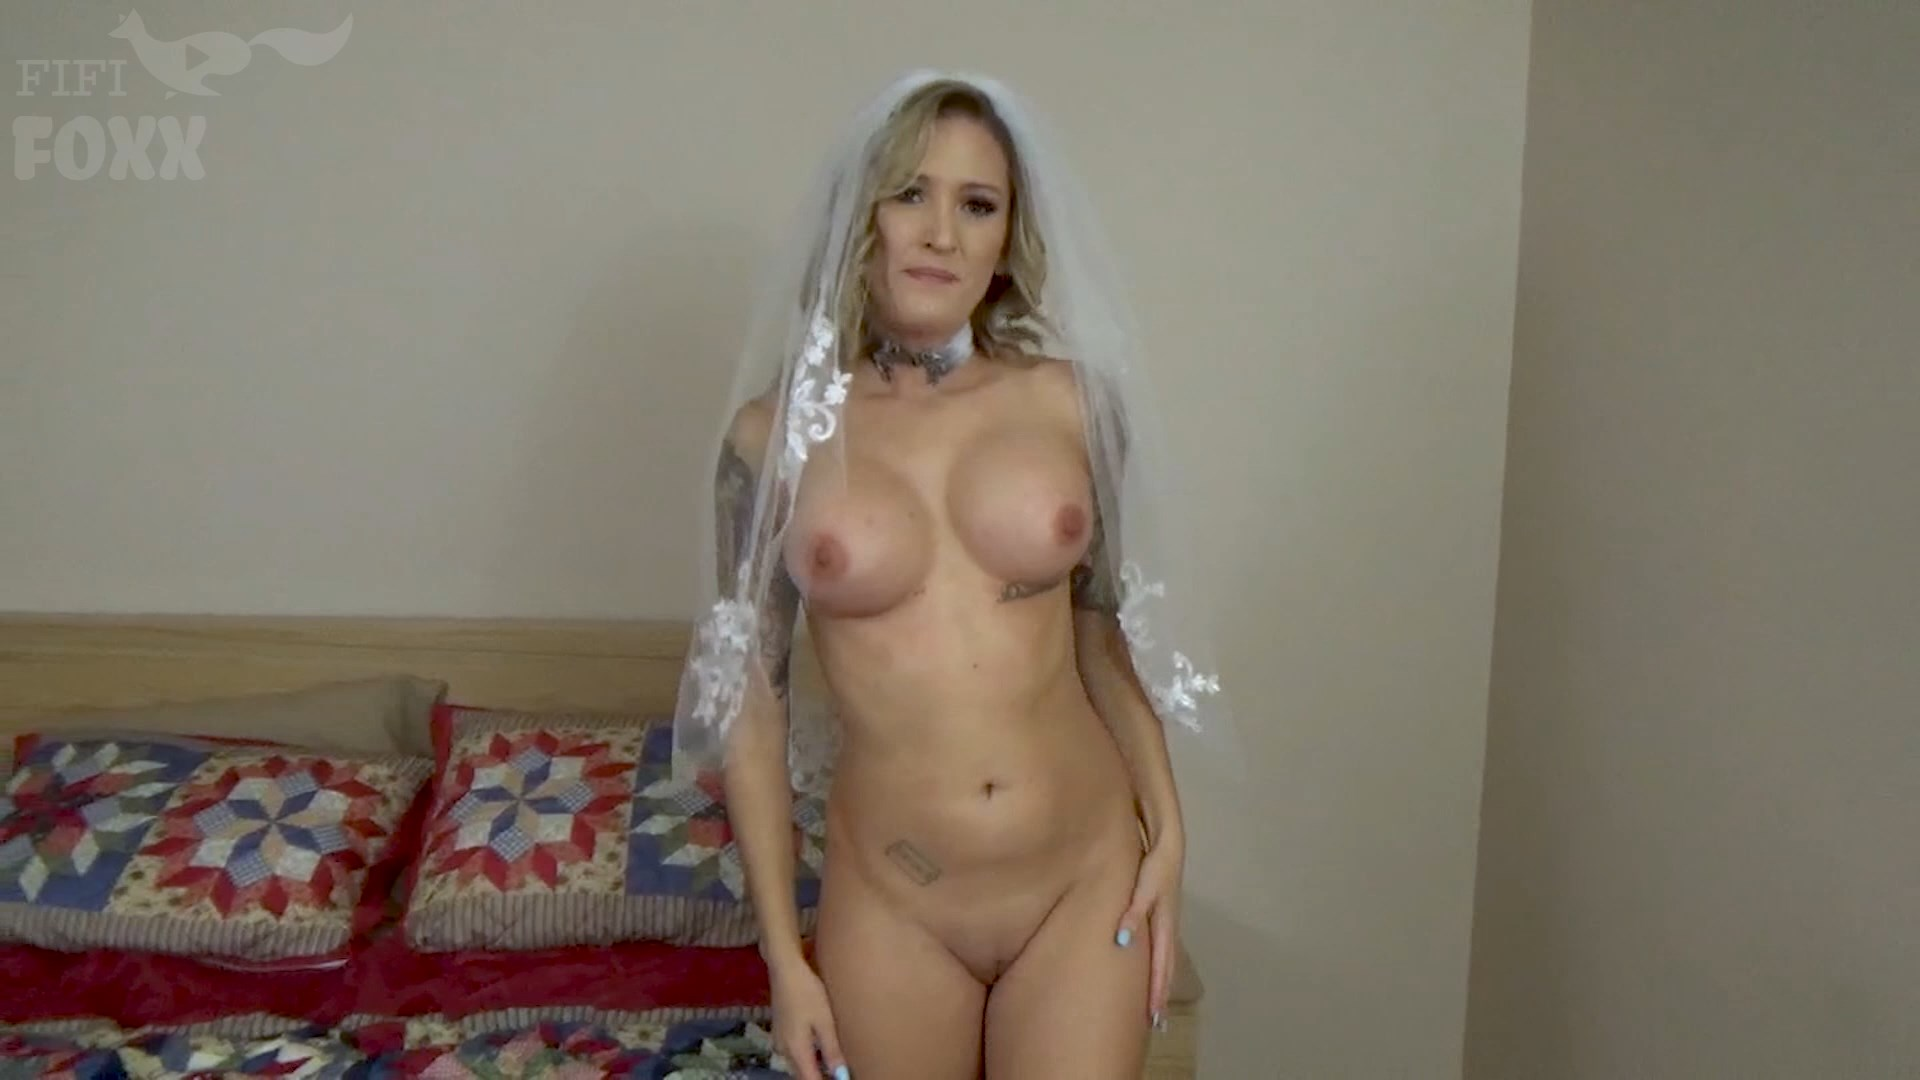 Fifi Foxx Fantasies - Reagan Lush - Mommy is Your Lover & New Wife - Mom & Son Get Married and Start a Family Together, POV - Wedding, Impregnation - HD 1080p